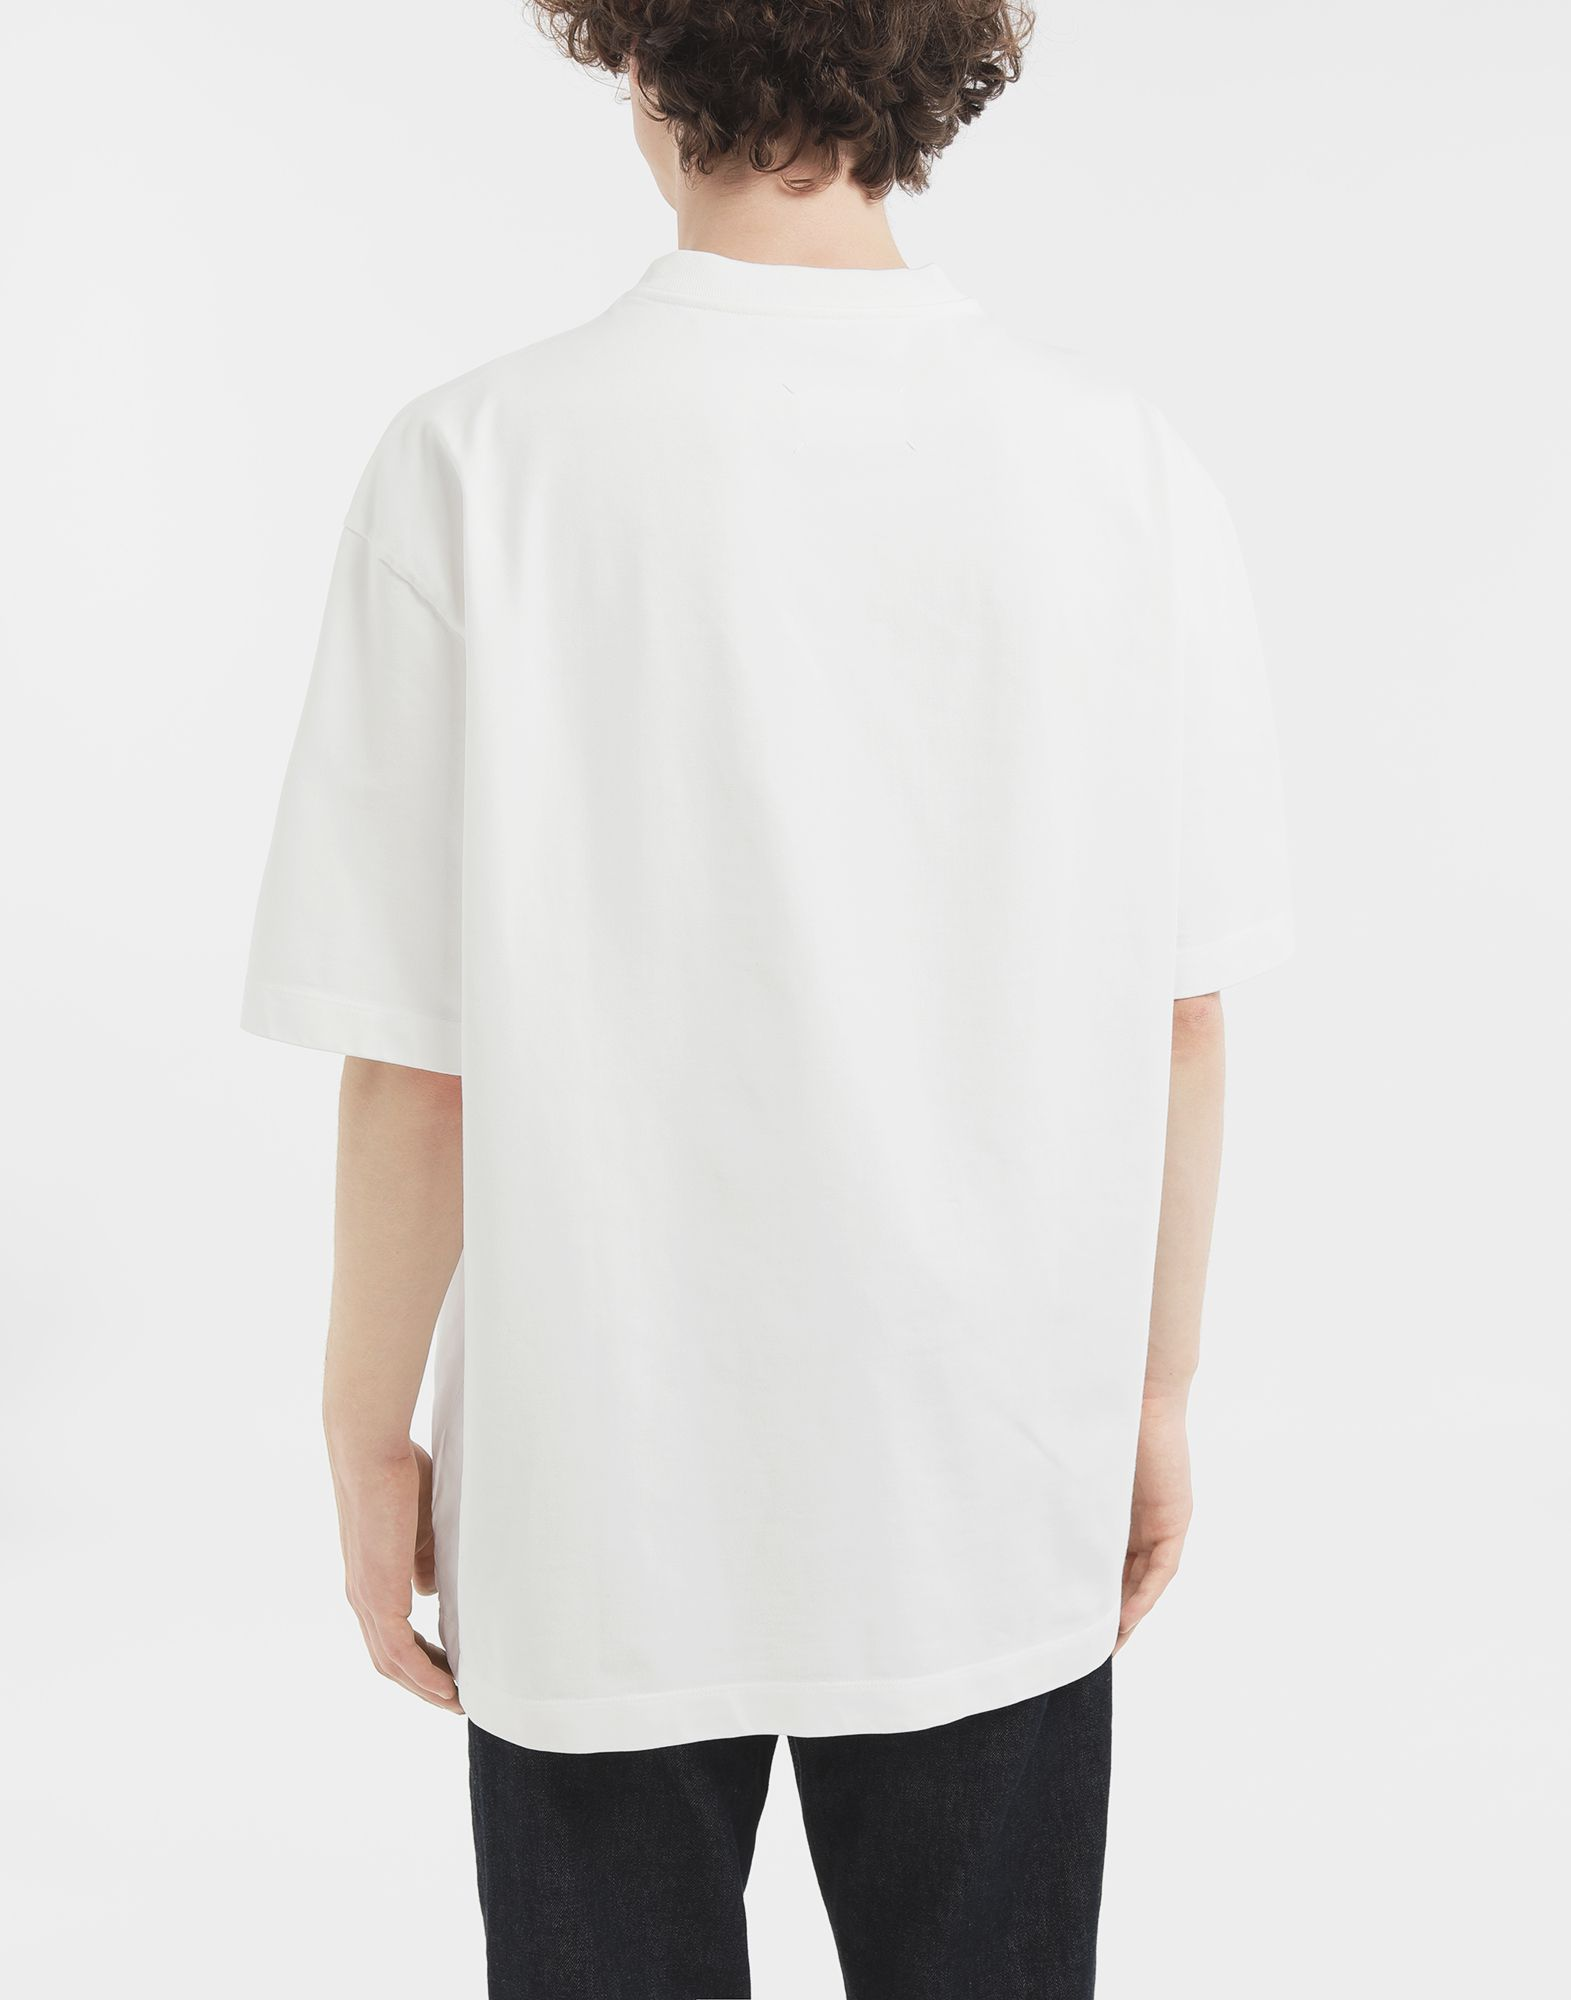 MAISON MARGIELA T-Shirt 'Caution' Kurzärmliges T-Shirt Herren e